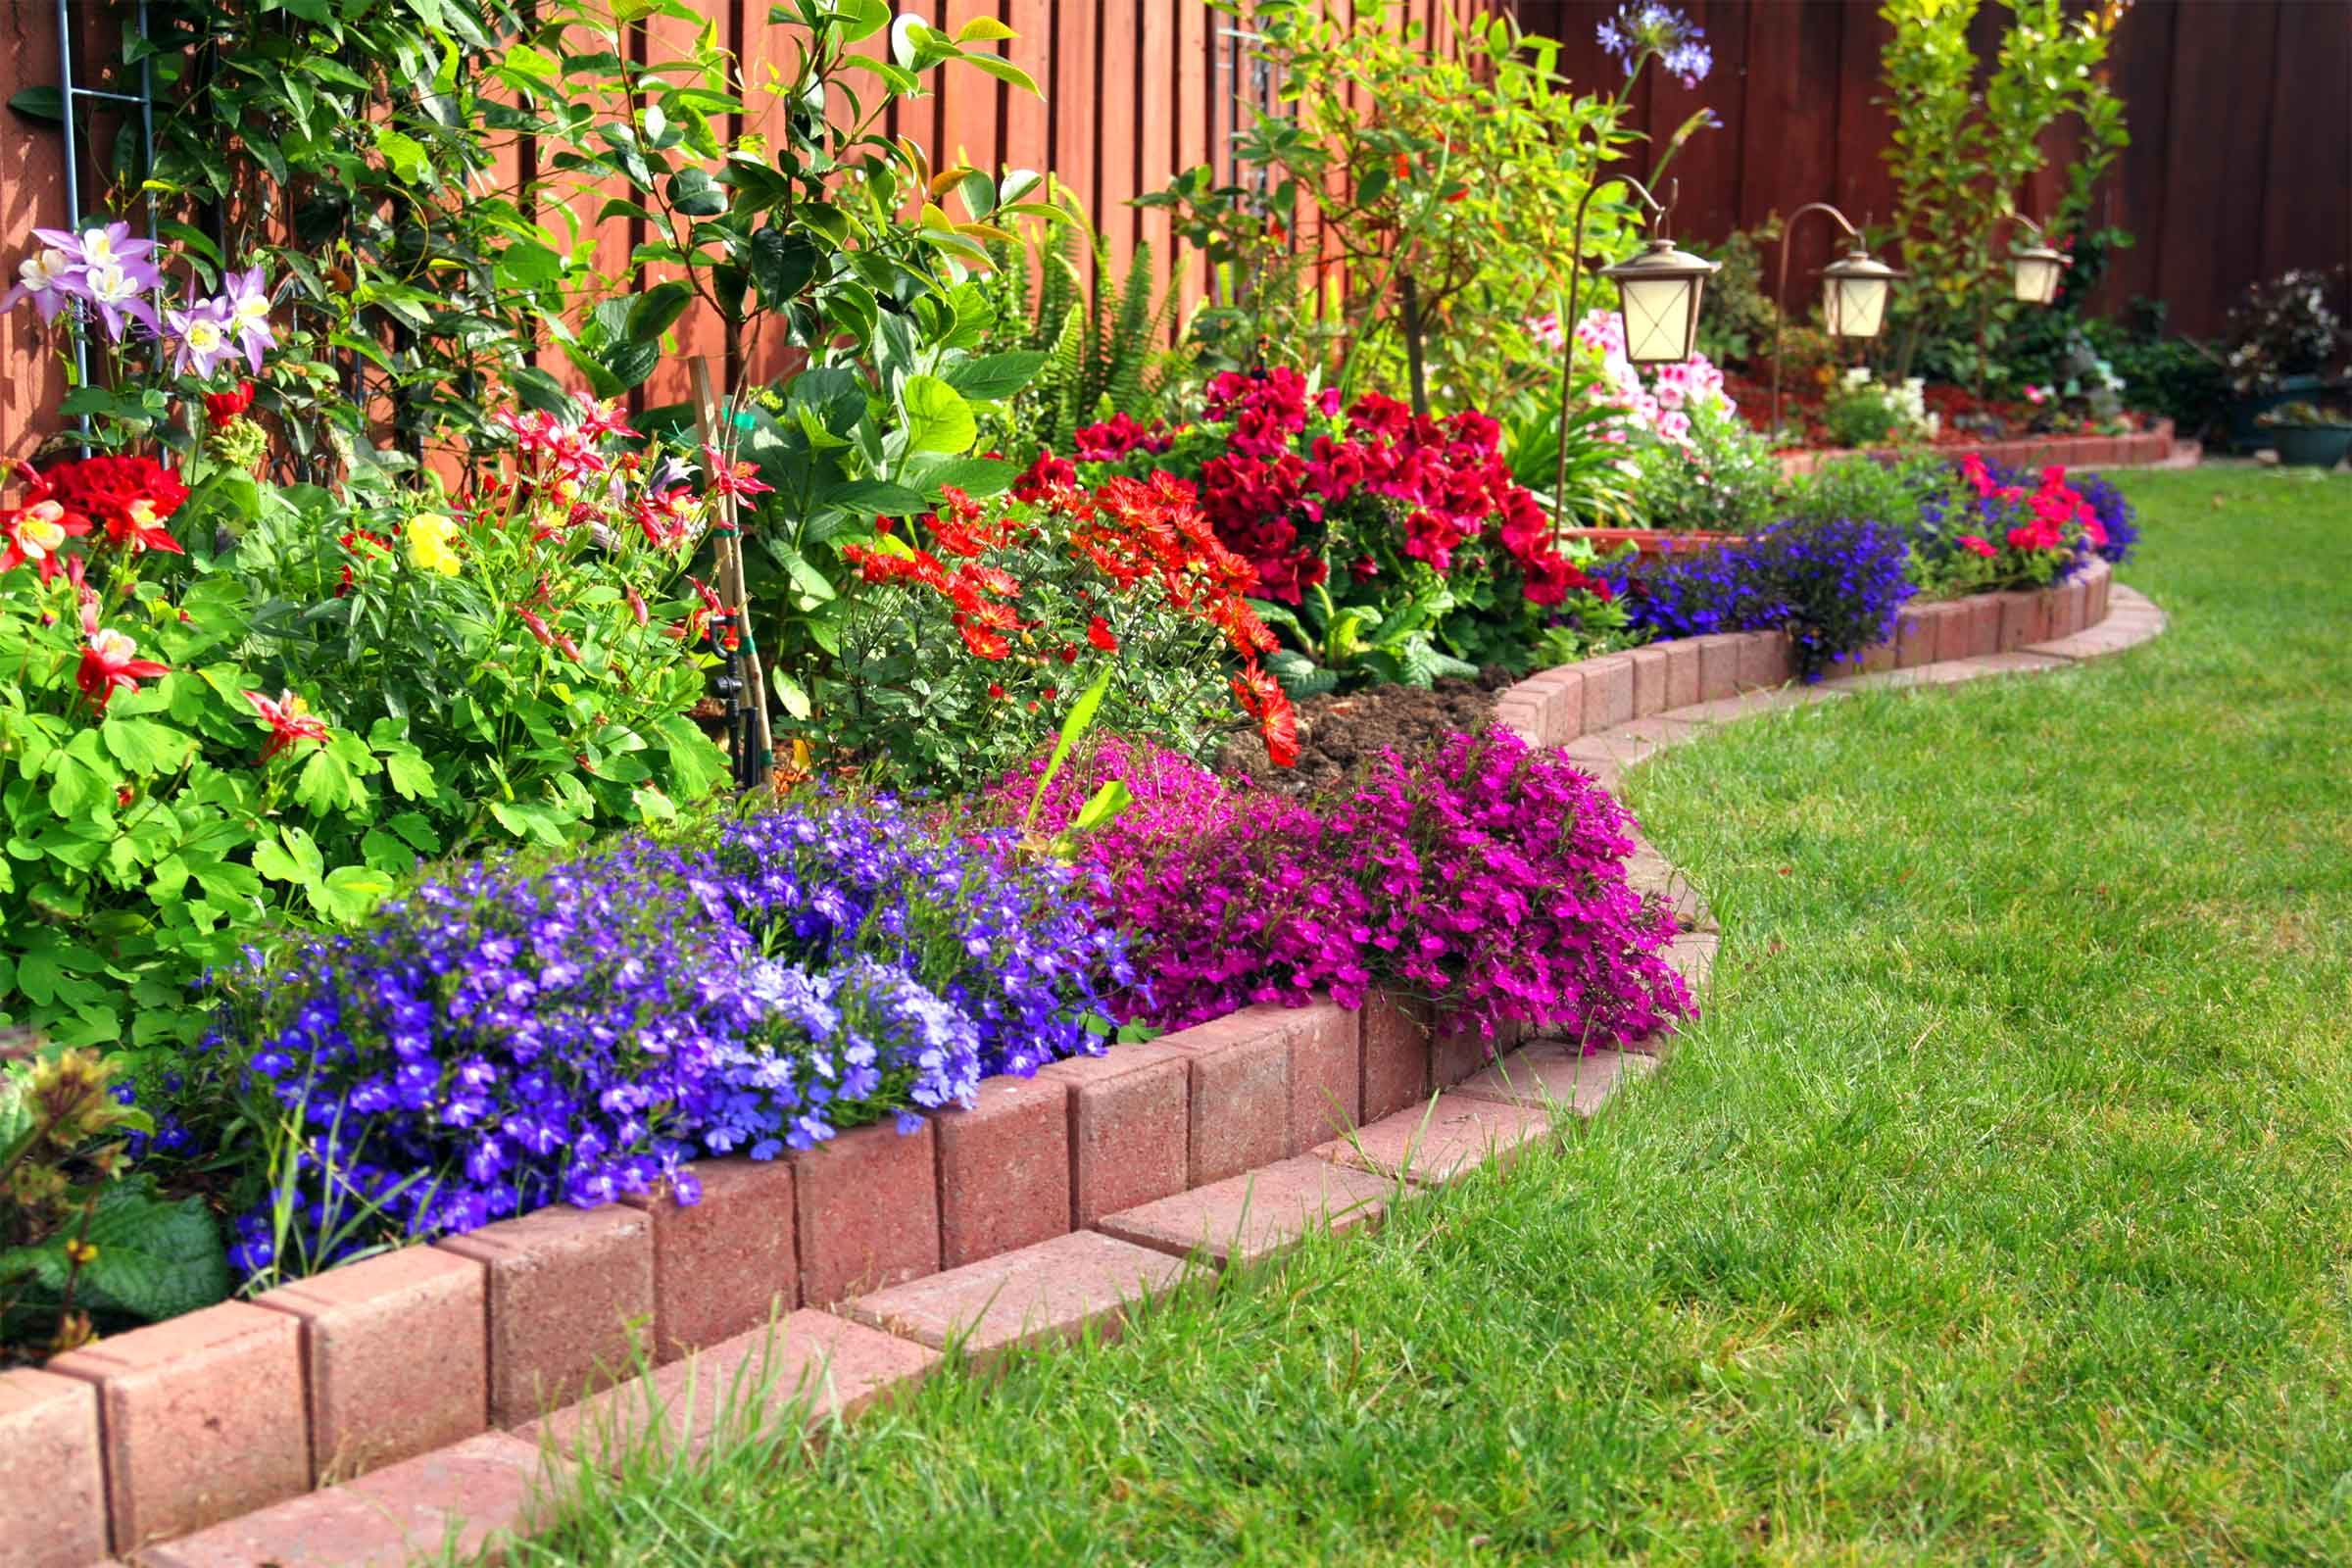 Yard Clean-Up: Mistakes That Make Your Yard Look Messy | Reader\u0027s ...